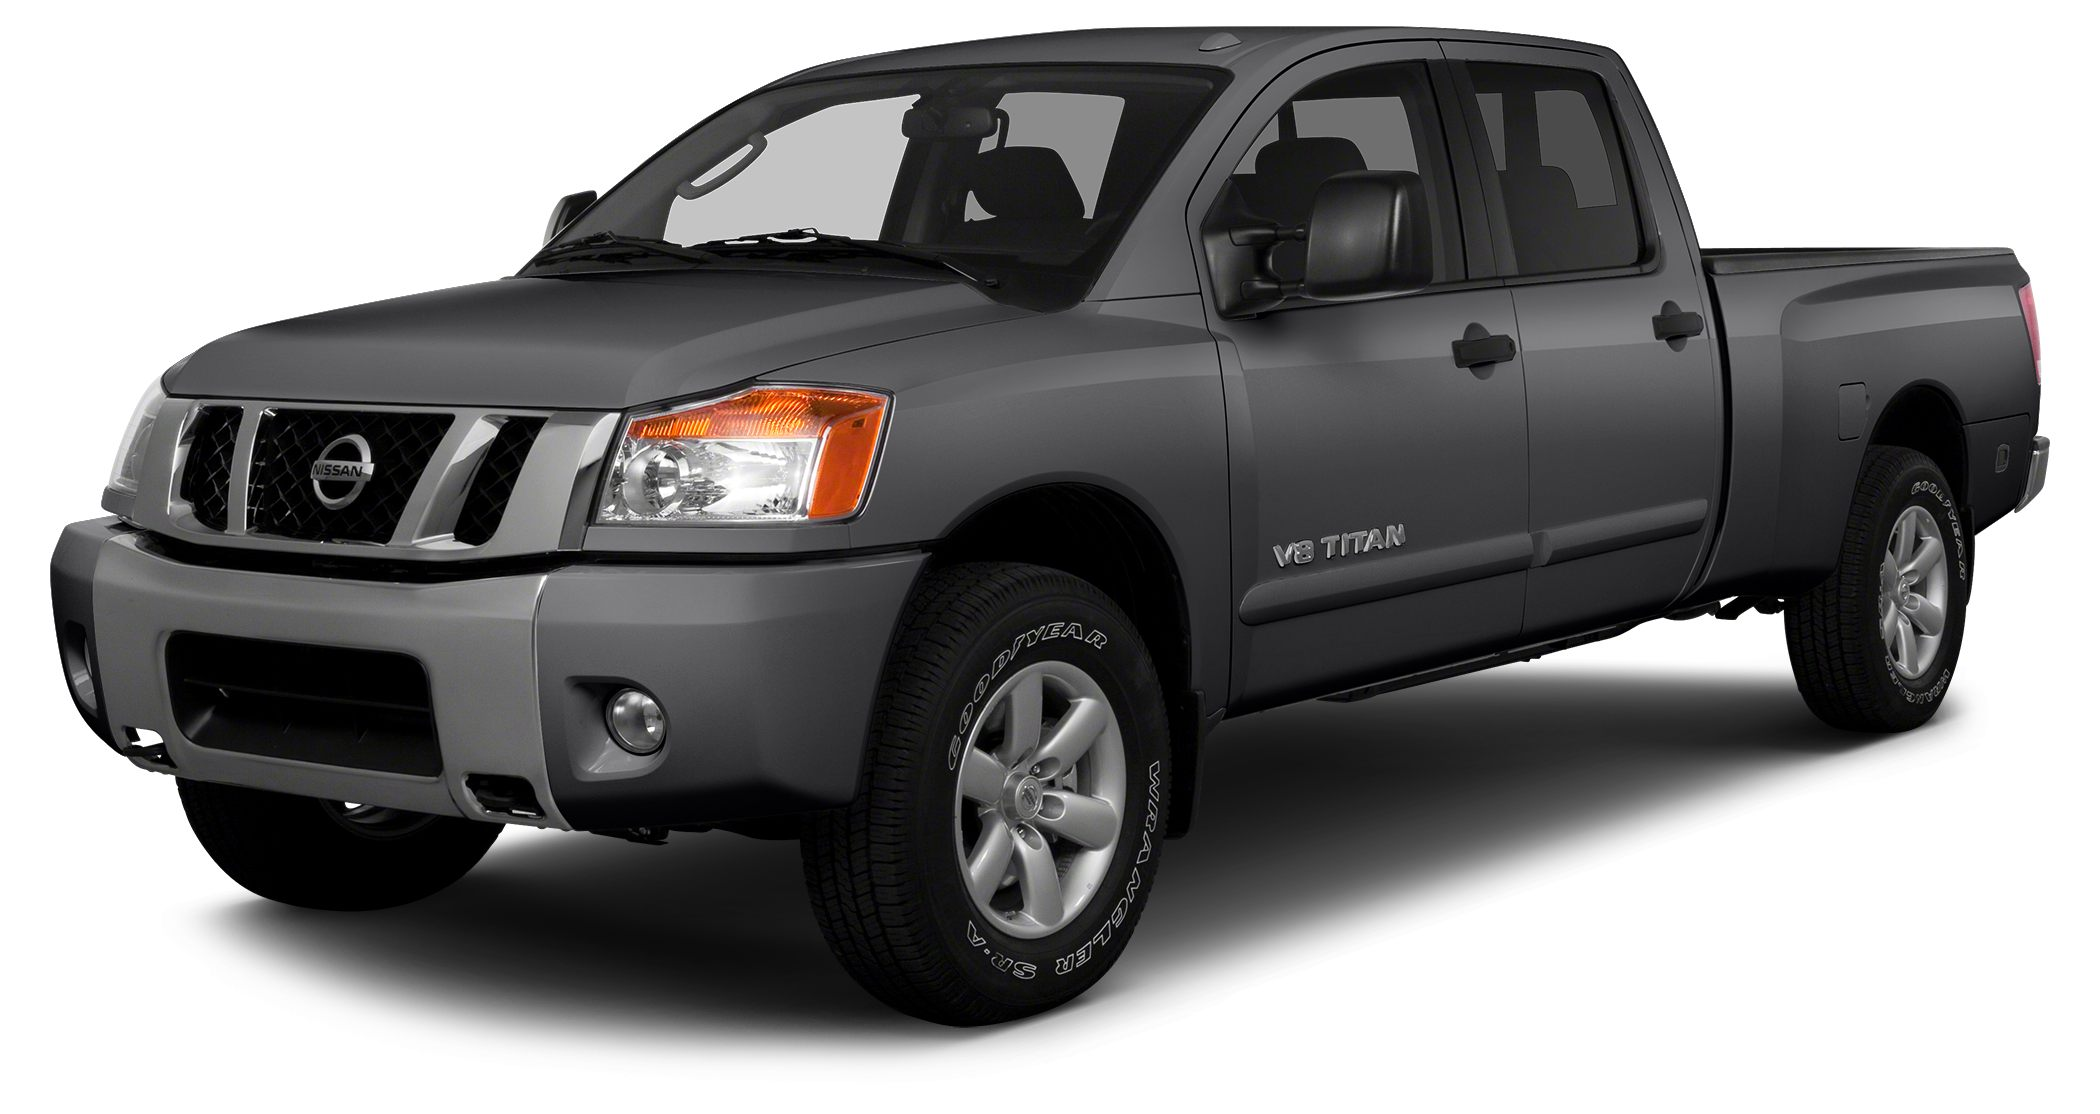 2015 Nissan Titan SV The Nissan Titan is a full size truck with aggressive looks and the capabilit